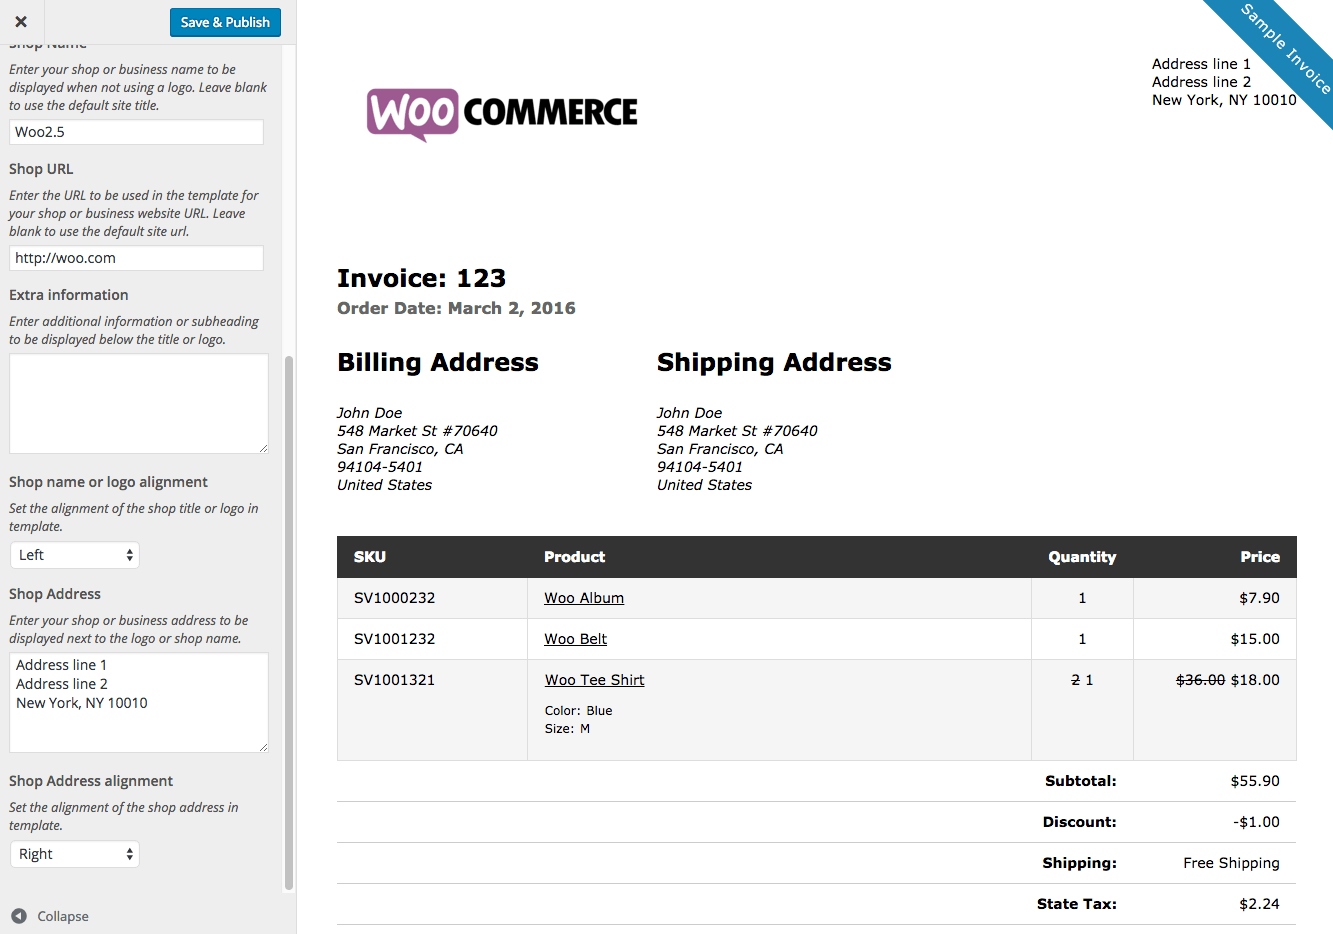 Ultrablogus  Unusual Print Invoices Amp Packing Lists  Woocommerce With Likable Woocommerce Print Invoices  Packing Lists Customizer With Beauteous Osceola County Business Tax Receipt Also Where Is Usps Tracking Number On Receipt In Addition Email Confirmation Receipt And Sears Exchange Policy Without Receipt As Well As Uscis Case Receipt Number Additionally Cash Donation Receipt Template From Woocommercecom With Ultrablogus  Likable Print Invoices Amp Packing Lists  Woocommerce With Beauteous Woocommerce Print Invoices  Packing Lists Customizer And Unusual Osceola County Business Tax Receipt Also Where Is Usps Tracking Number On Receipt In Addition Email Confirmation Receipt From Woocommercecom